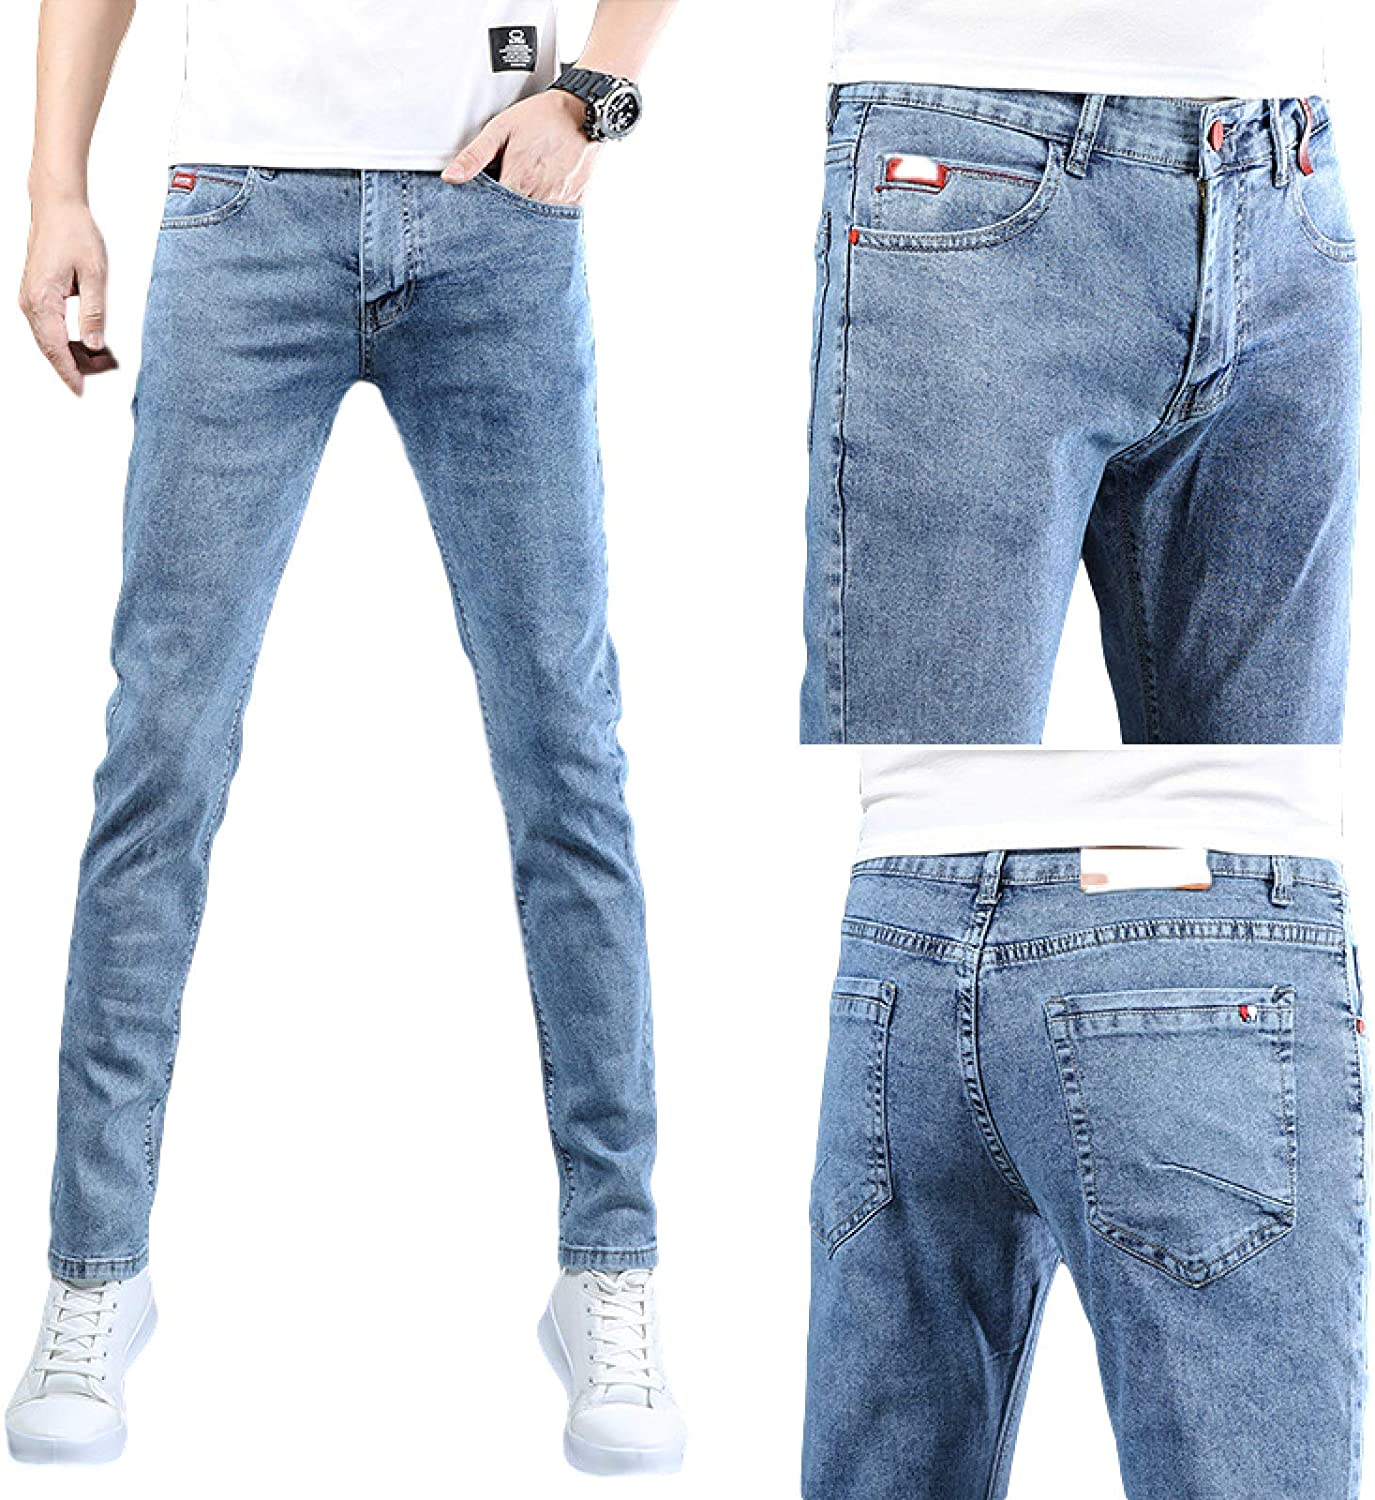 Bargain Sales results No. 1 Huntrly Men's Jeans Summer Thin Stretch J Slim-fit Trend Fashion